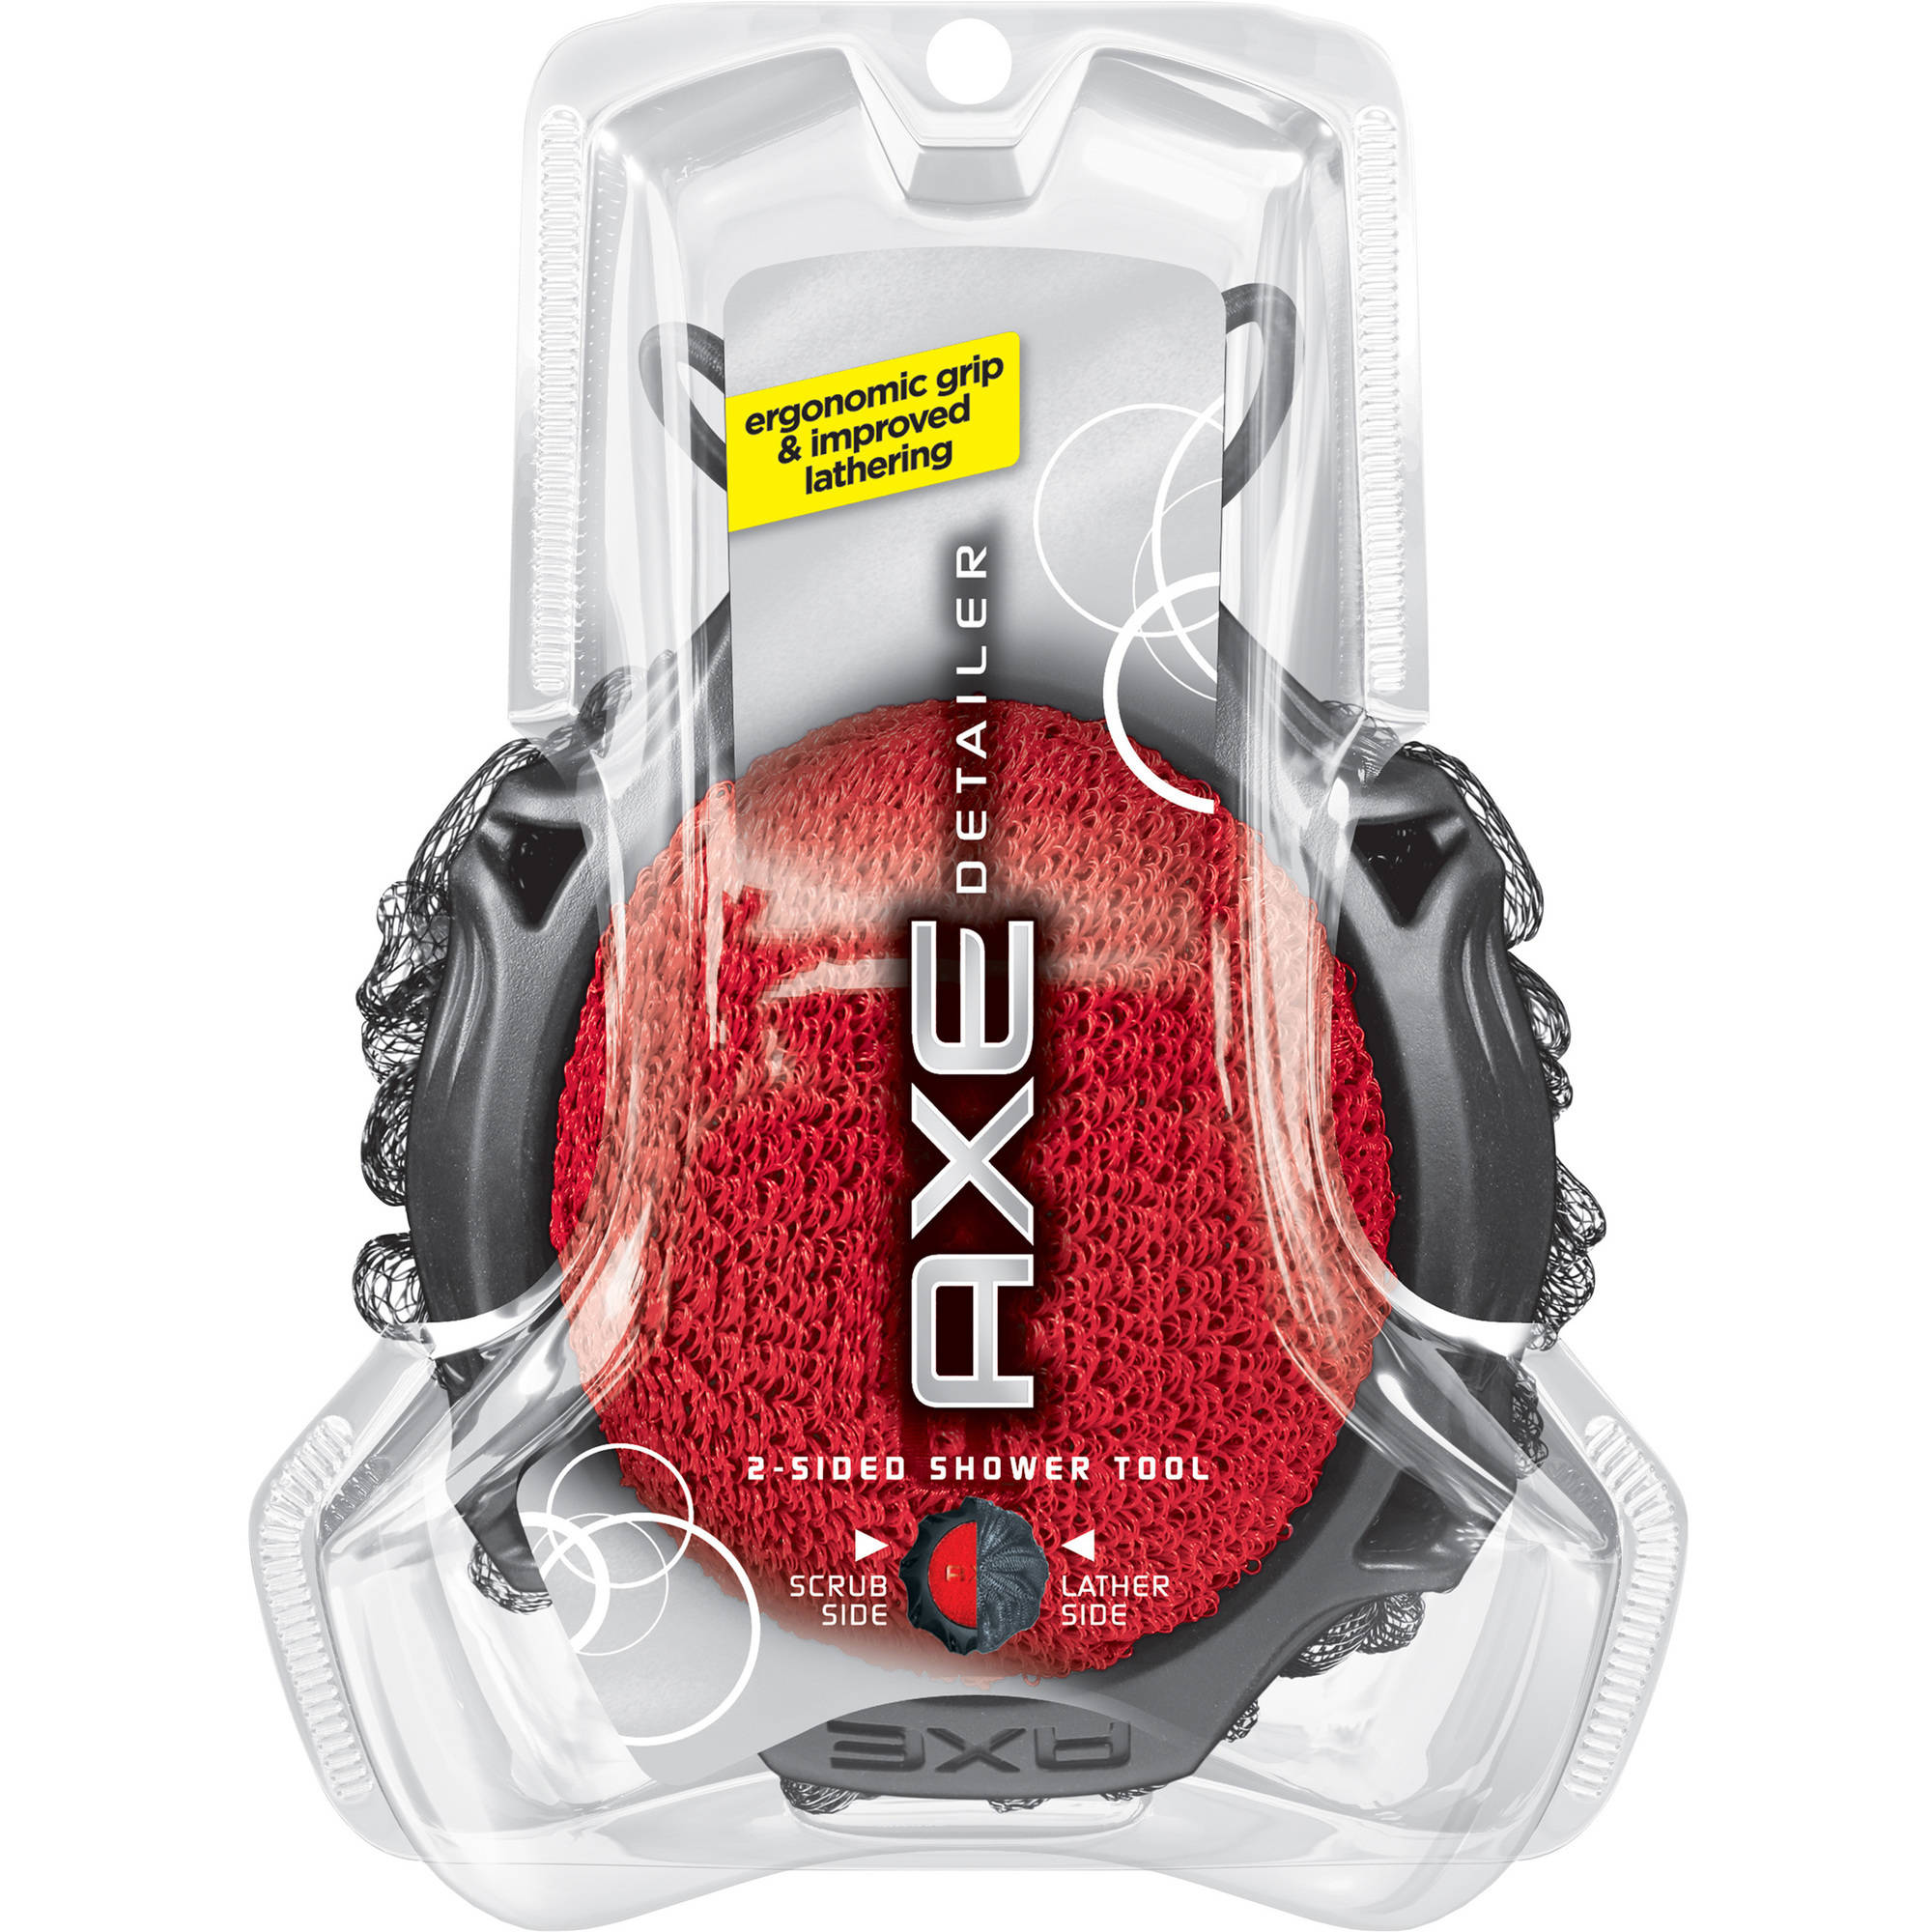 AXE Shower Tool Detailer, 1 ea